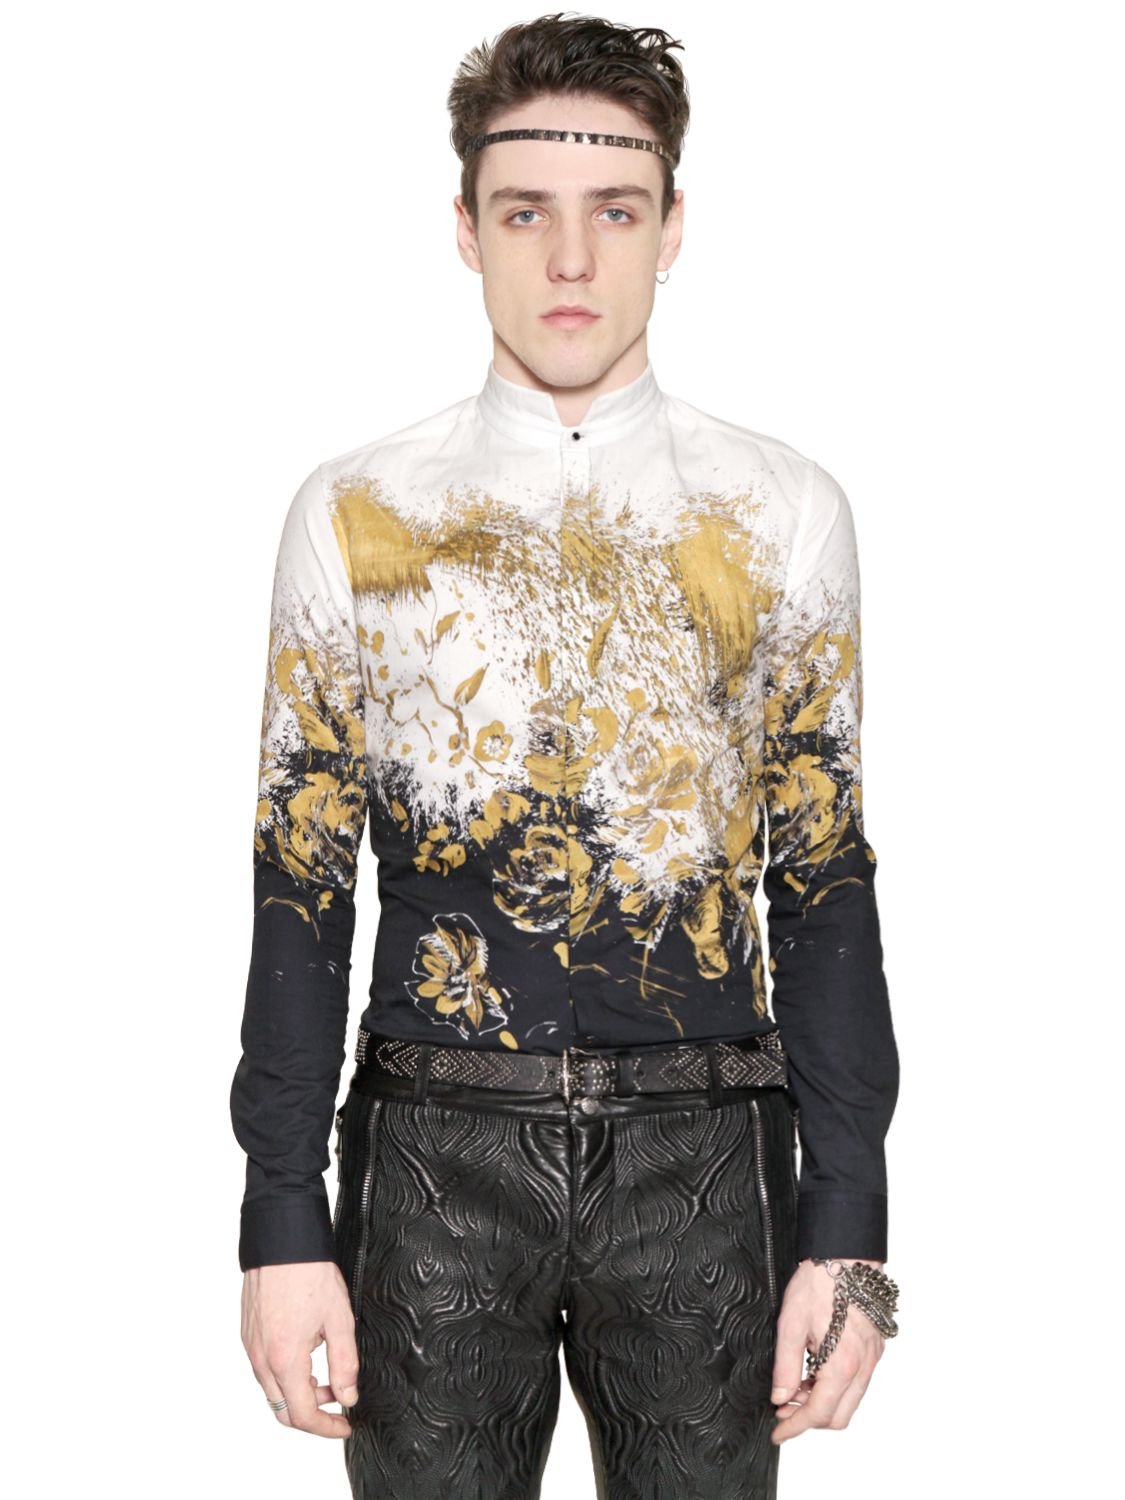 Roberto Cavalli Paint Attack Printed Cotton Poplin Shirt